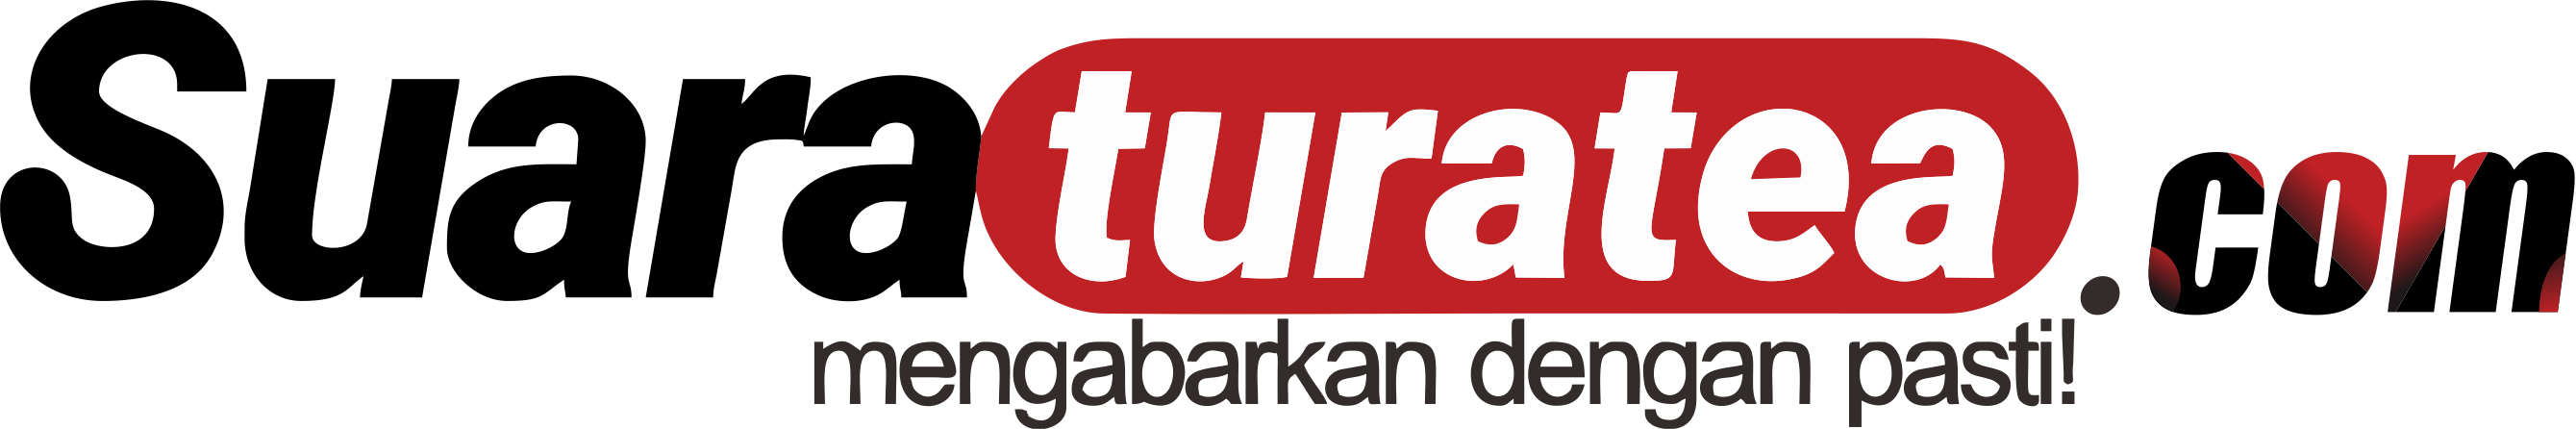 Suaraturatea.com